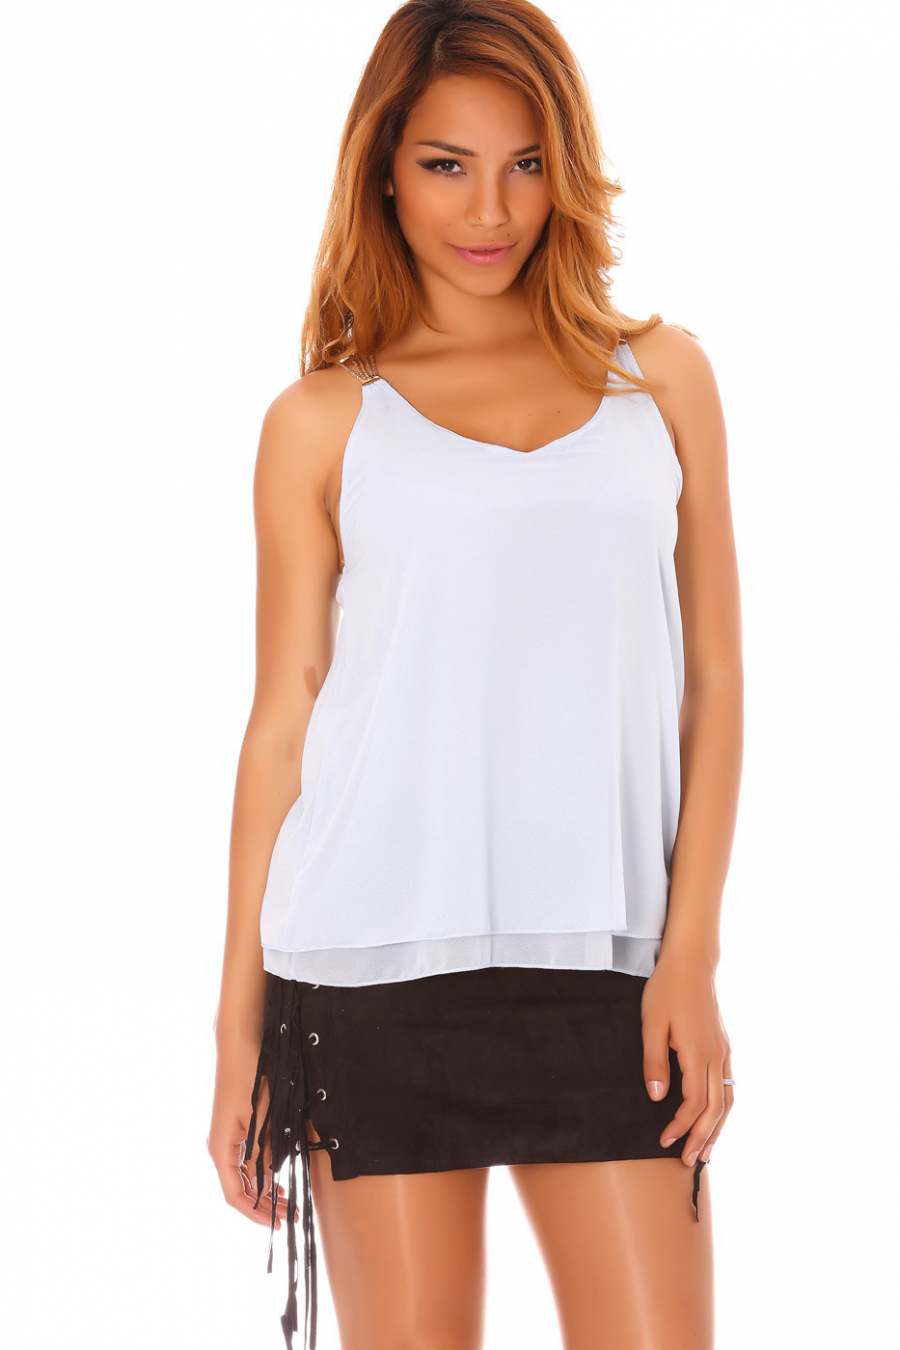 Blue sheer top with chain straps - MC1411